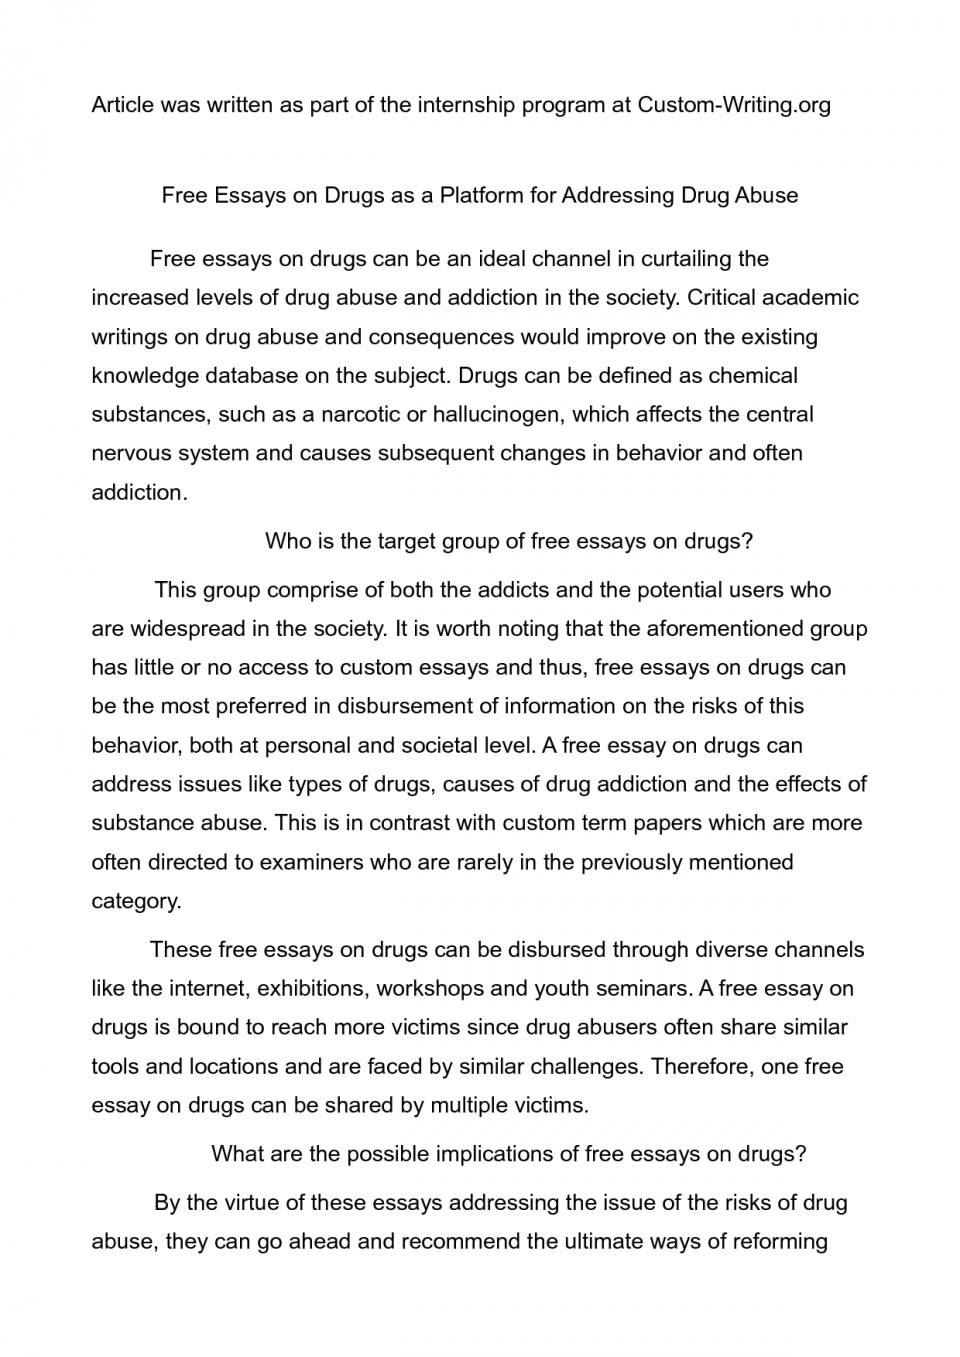 006 Argumentation Essay About Drugs Dreaded Argumentative Conclusion Sentence Starters Introduction Format 9th Grade 960